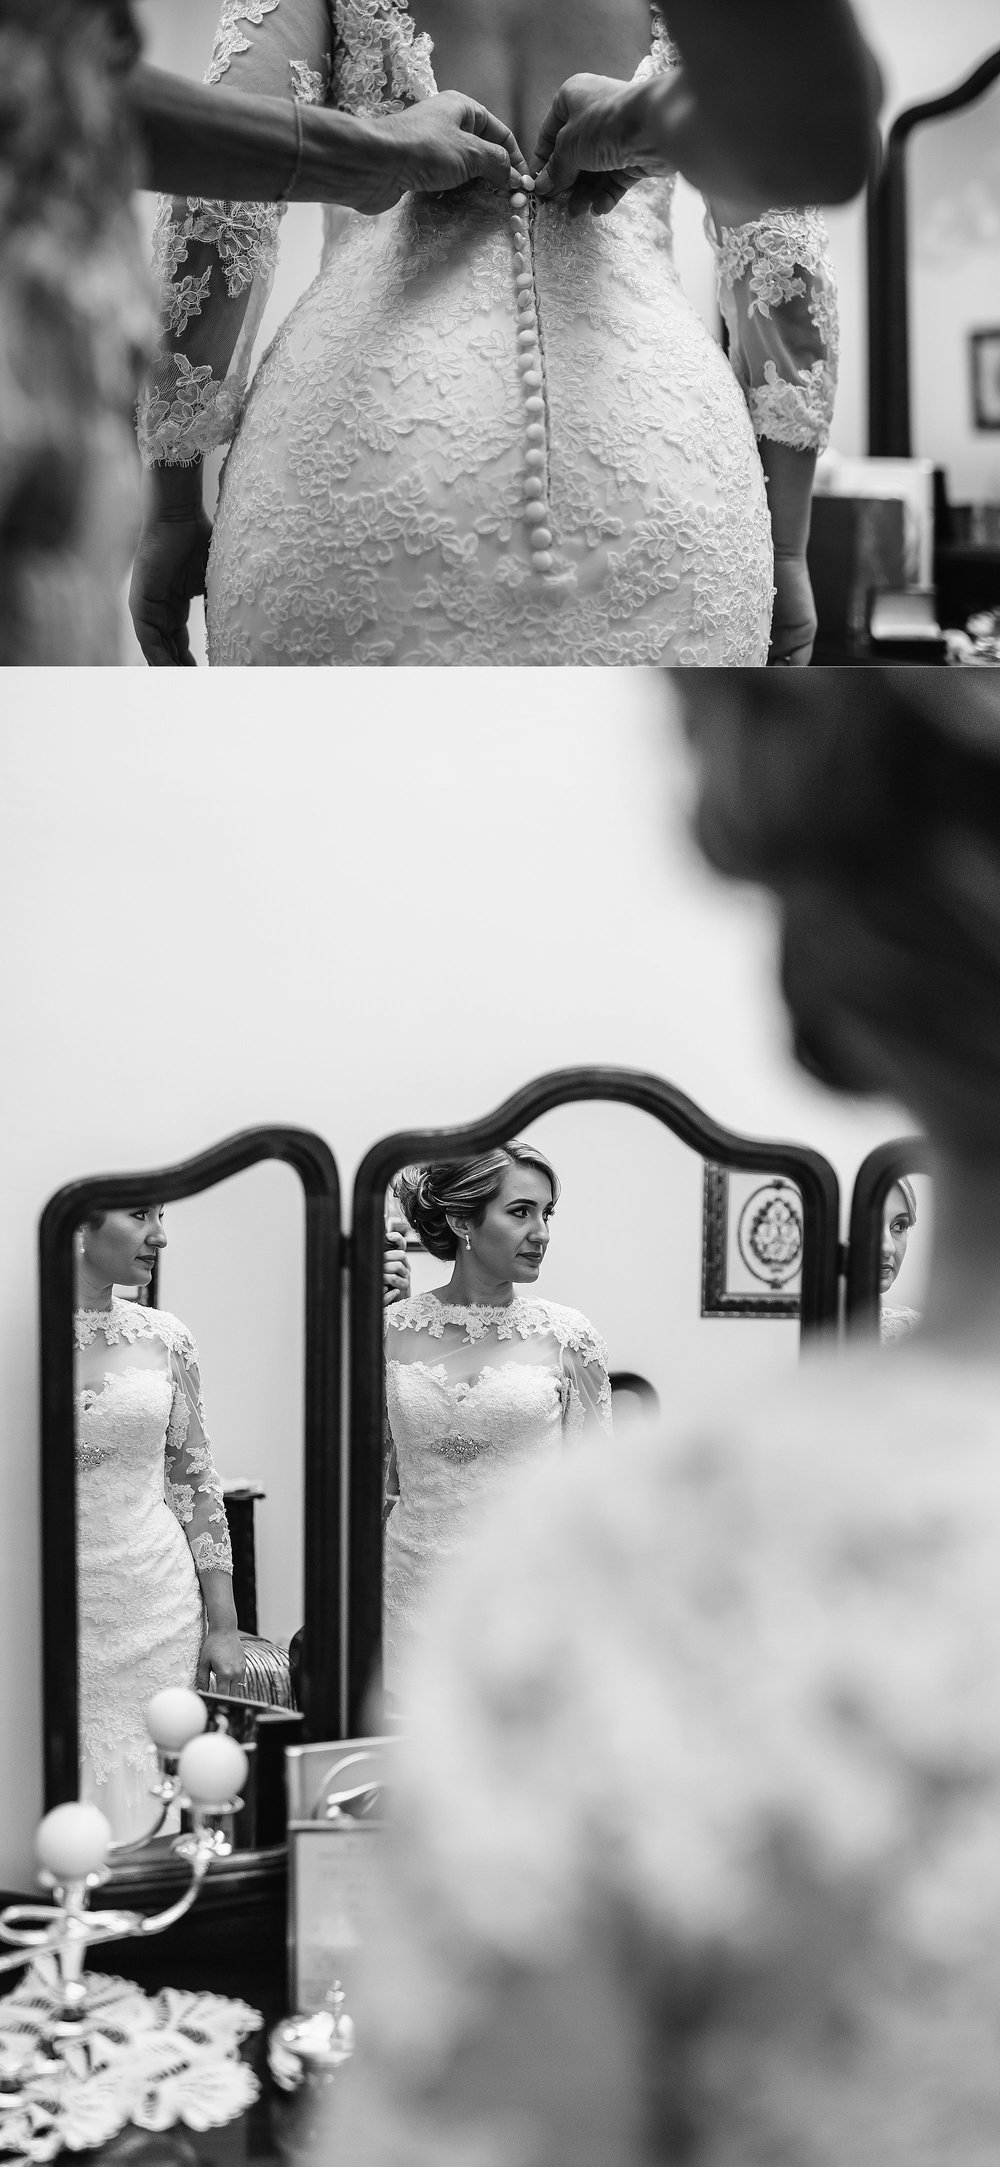 Xanthe & Kris - Xara Lodge - Wedding Photography Malta - Shane P. Watts